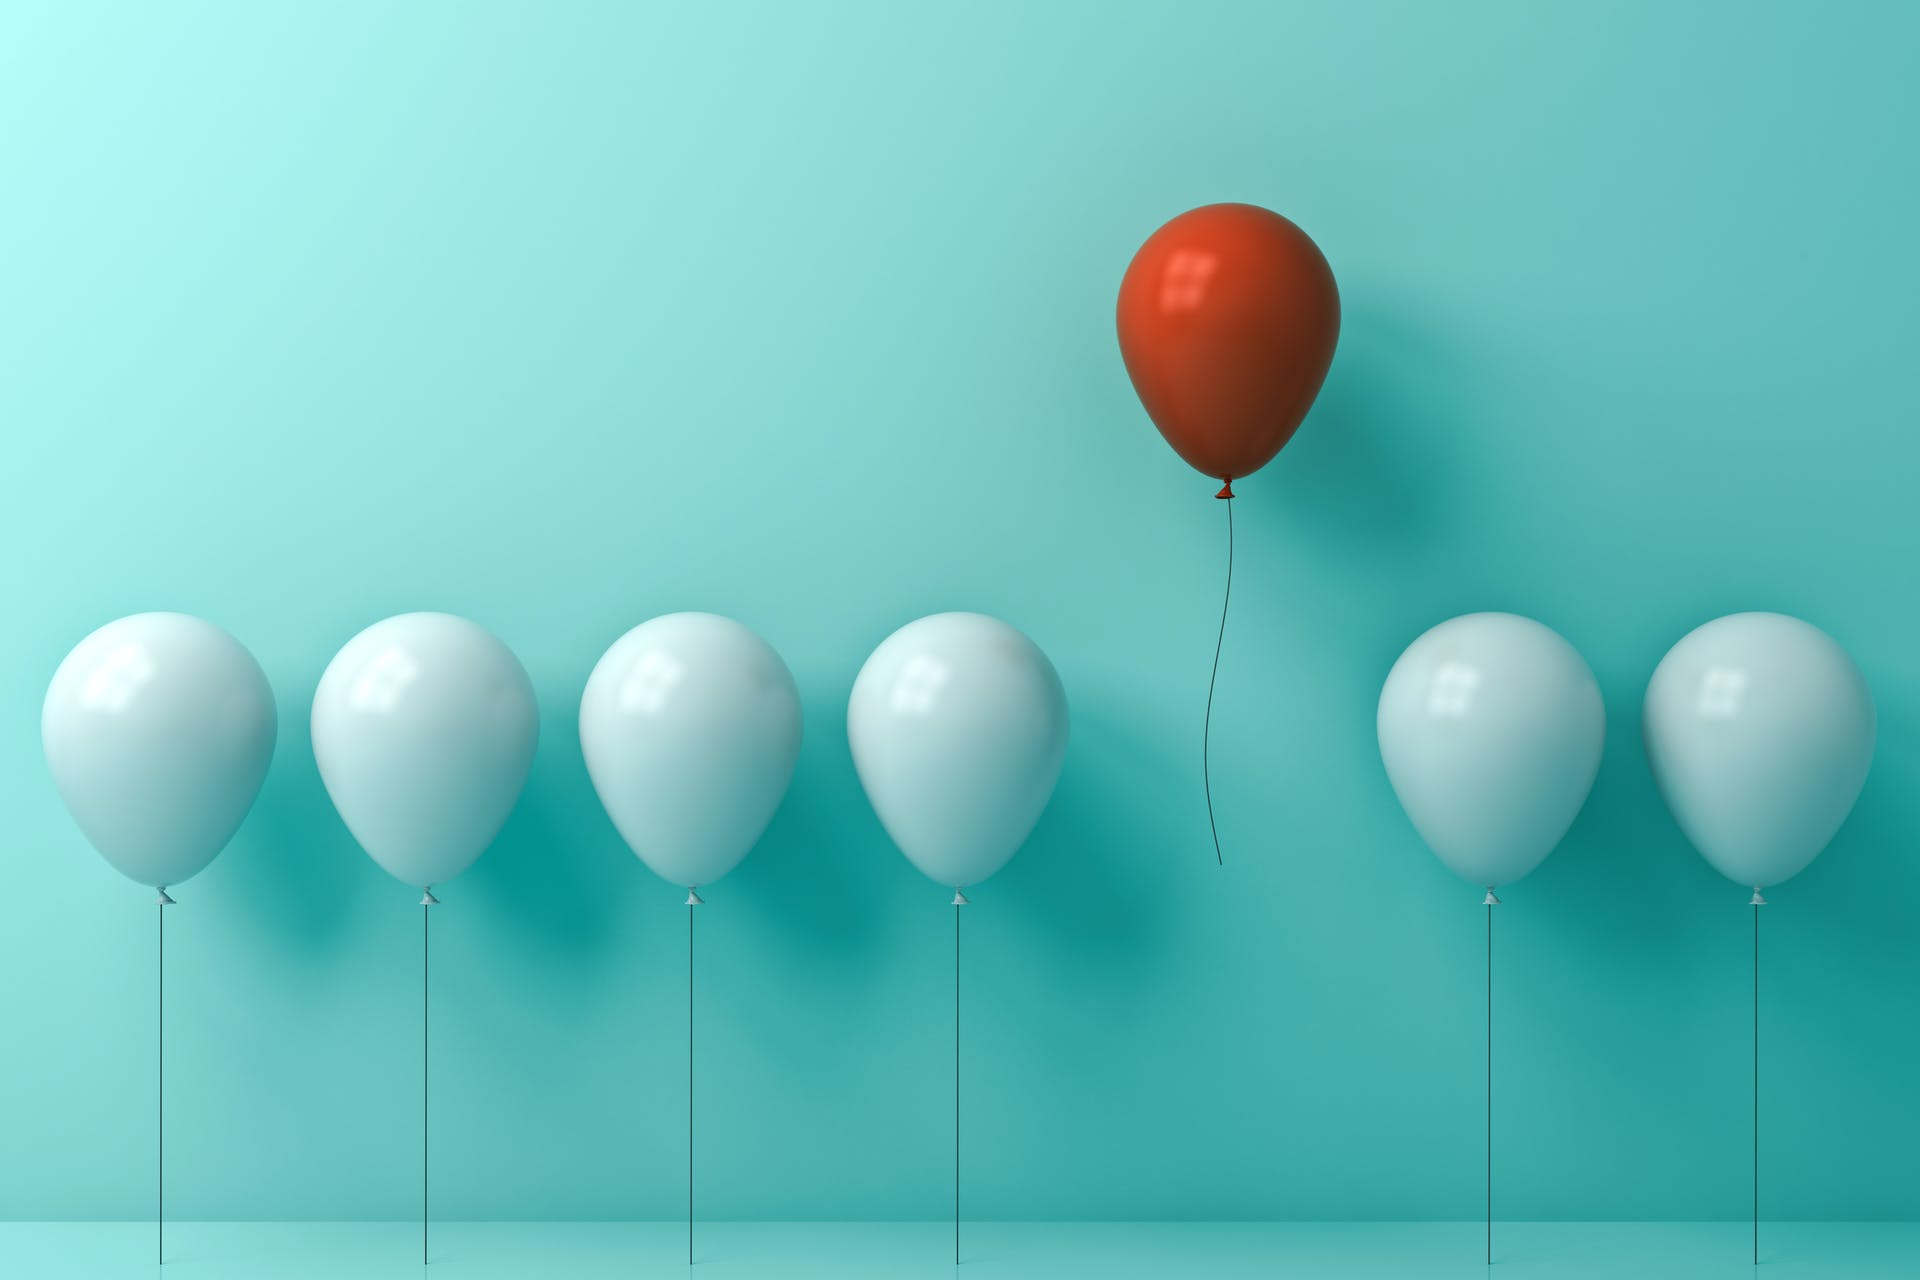 Image of white balloons with one red balloon flying away